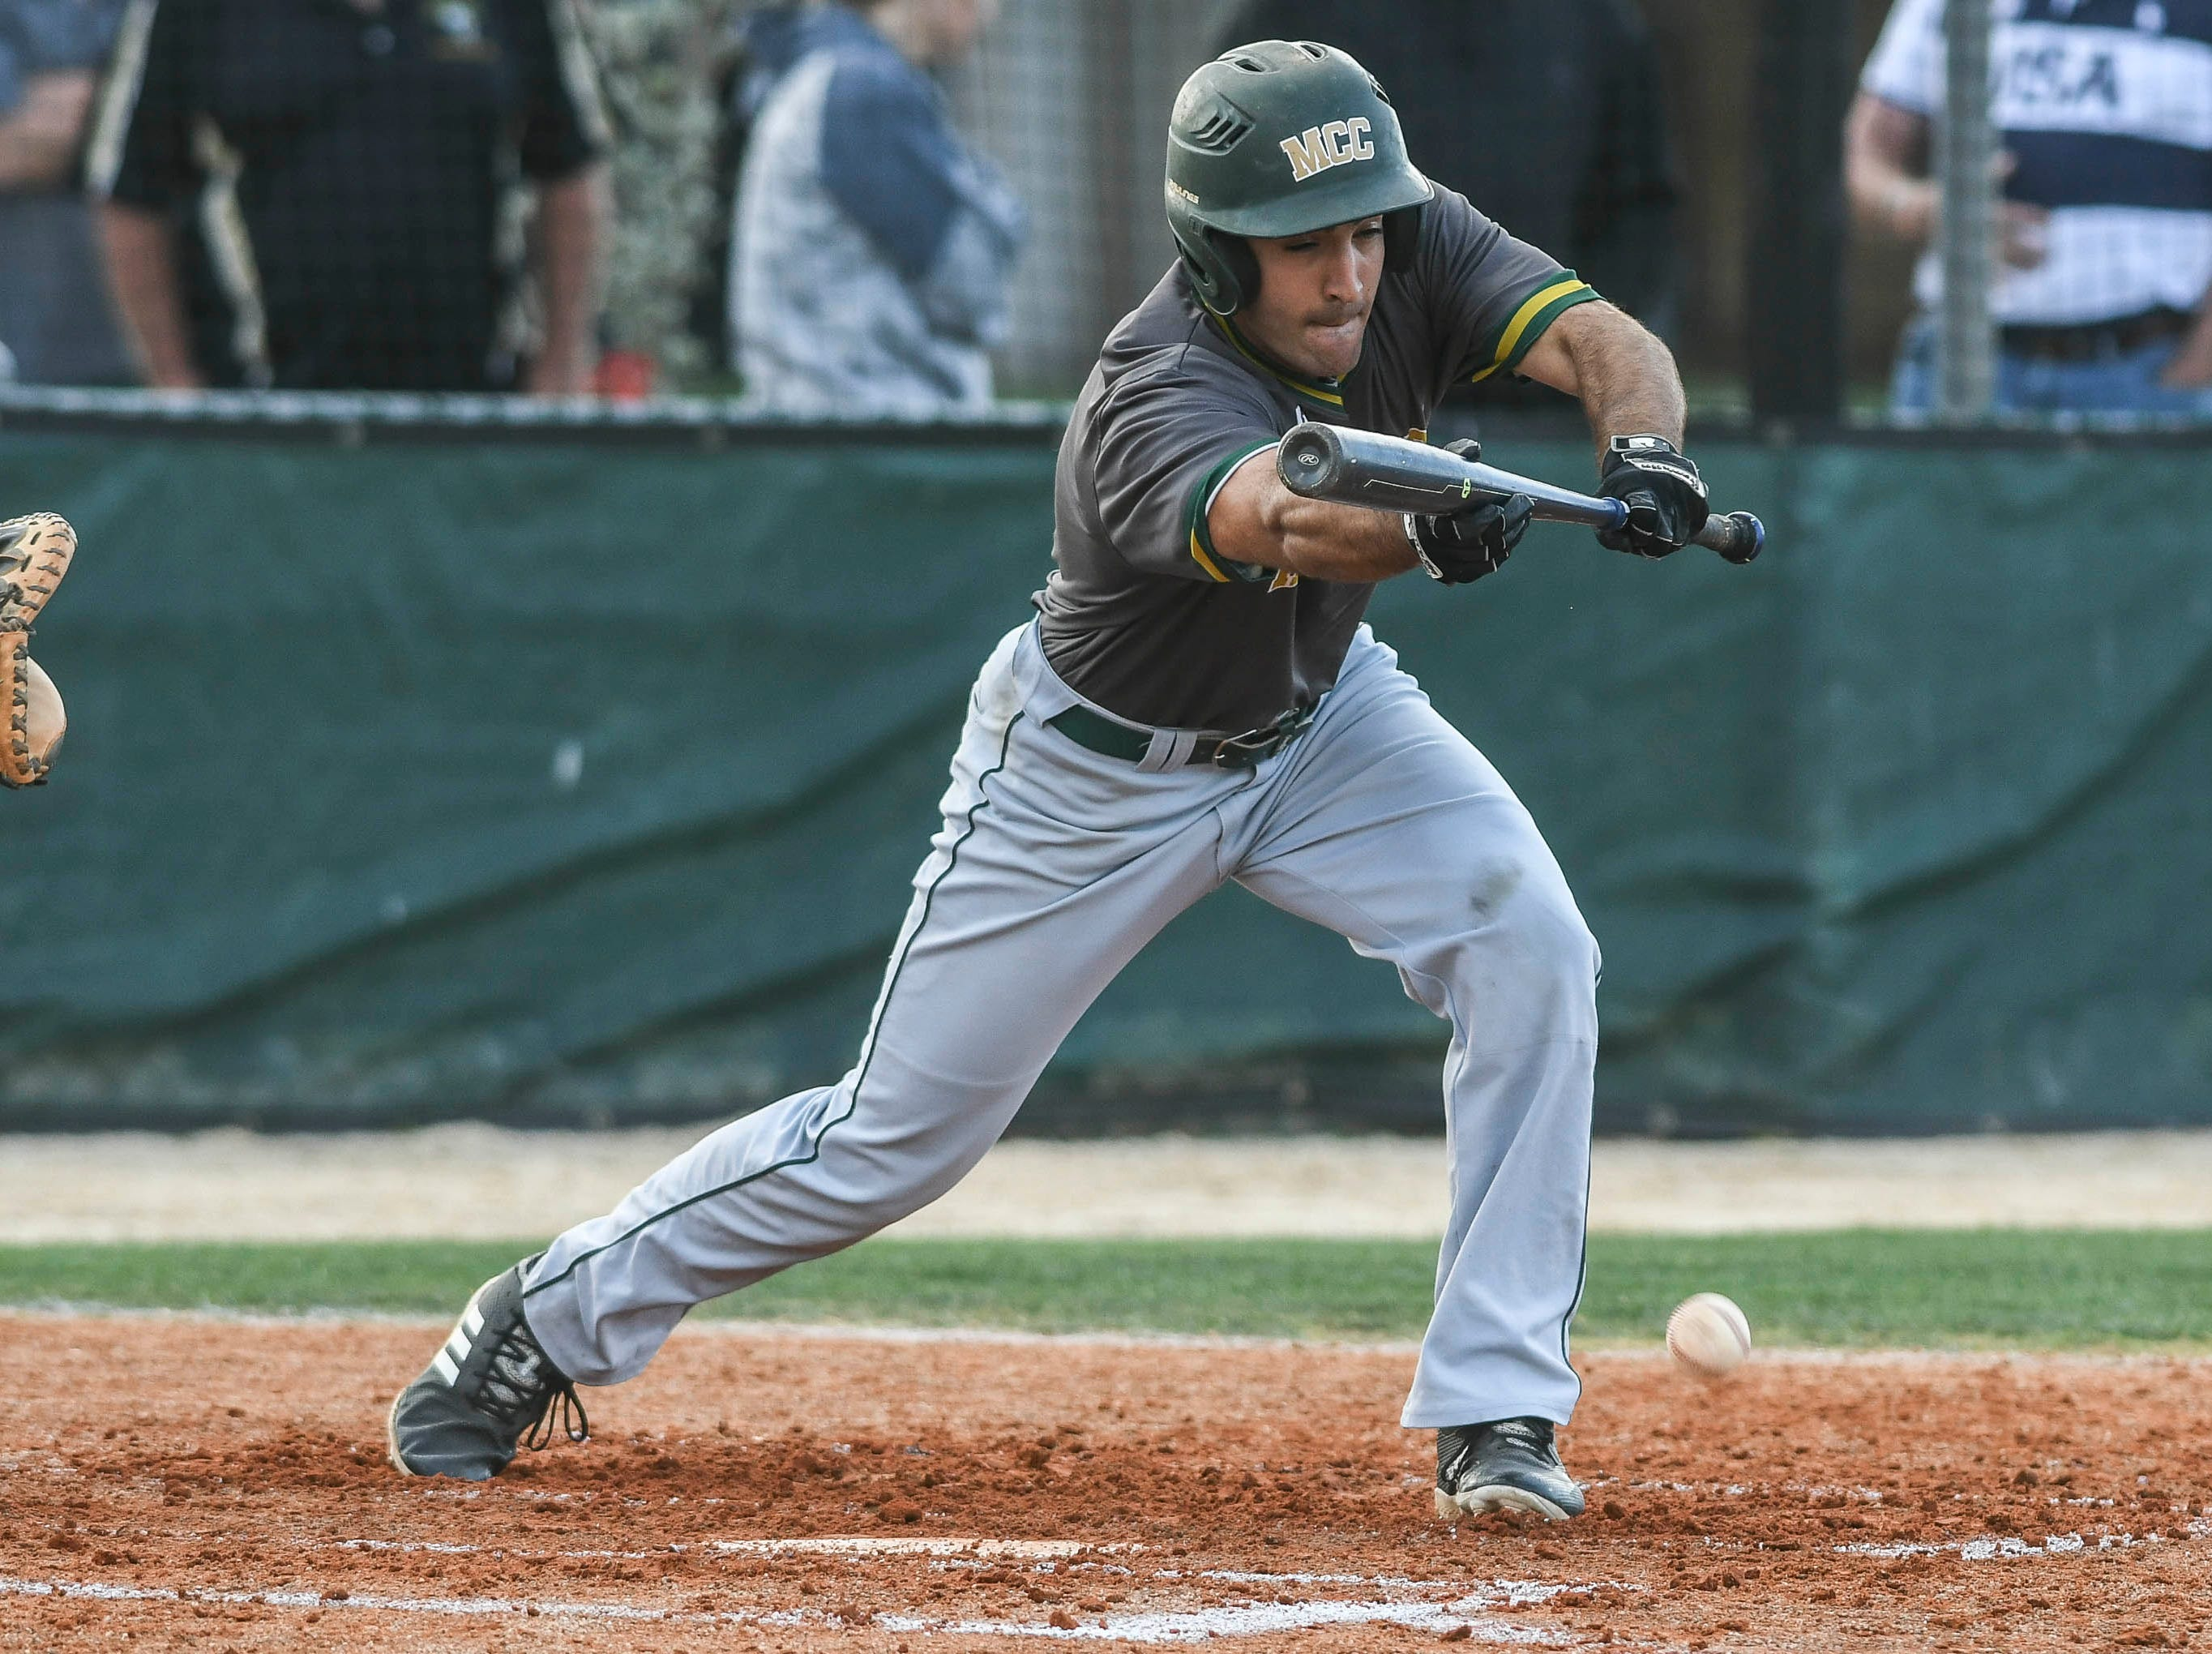 Anthony Zarzana of Melbourne Central Catholic attempts a bunt during Wednesday's game against Melbourne.